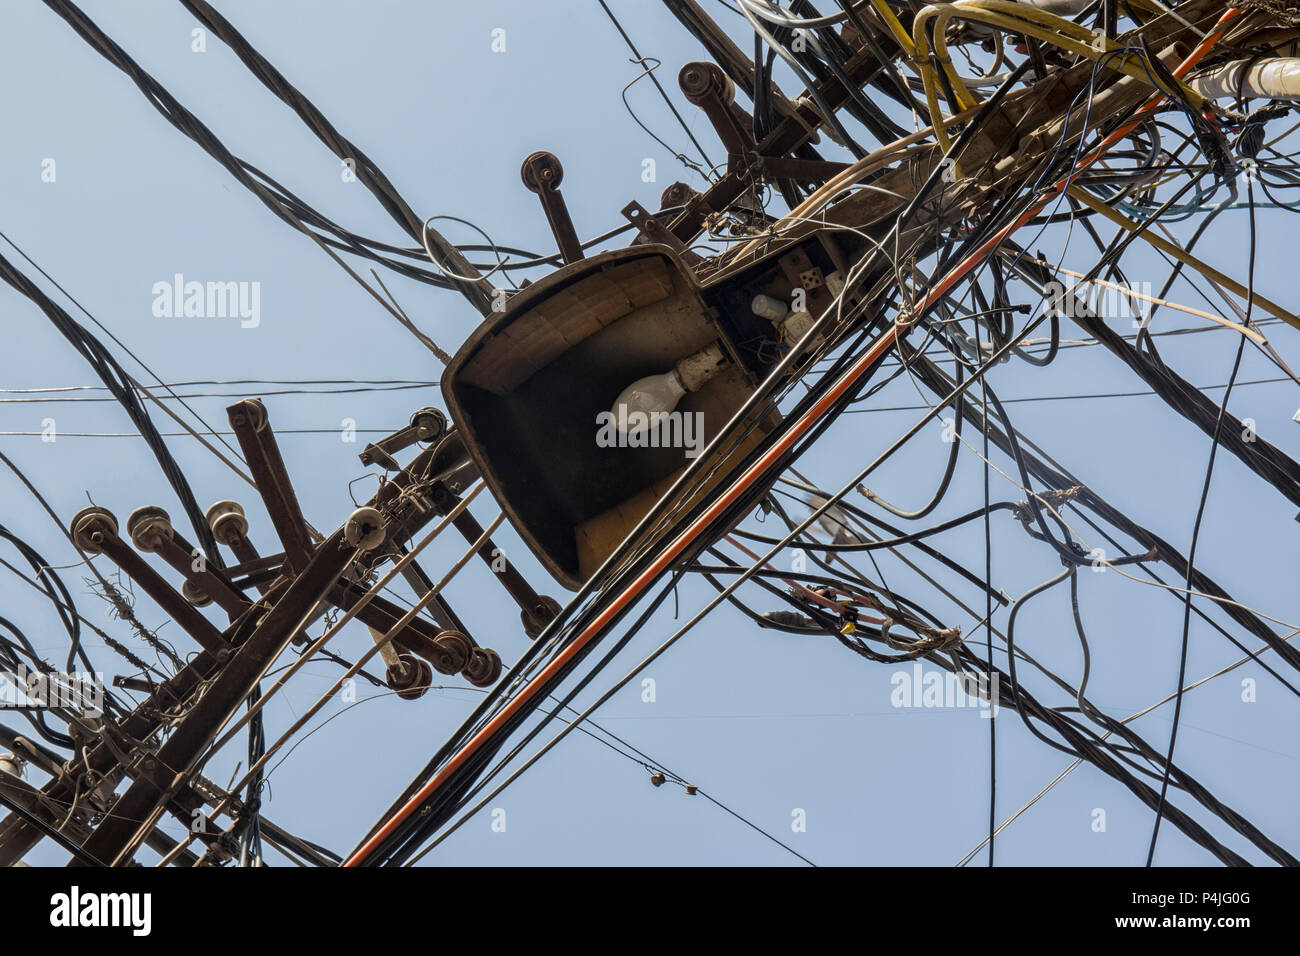 Messy wires attached to the electric pole, the chaos of cables and wires on an electric pole in Bangkok, Thailand, concept of electricity - Stock Image